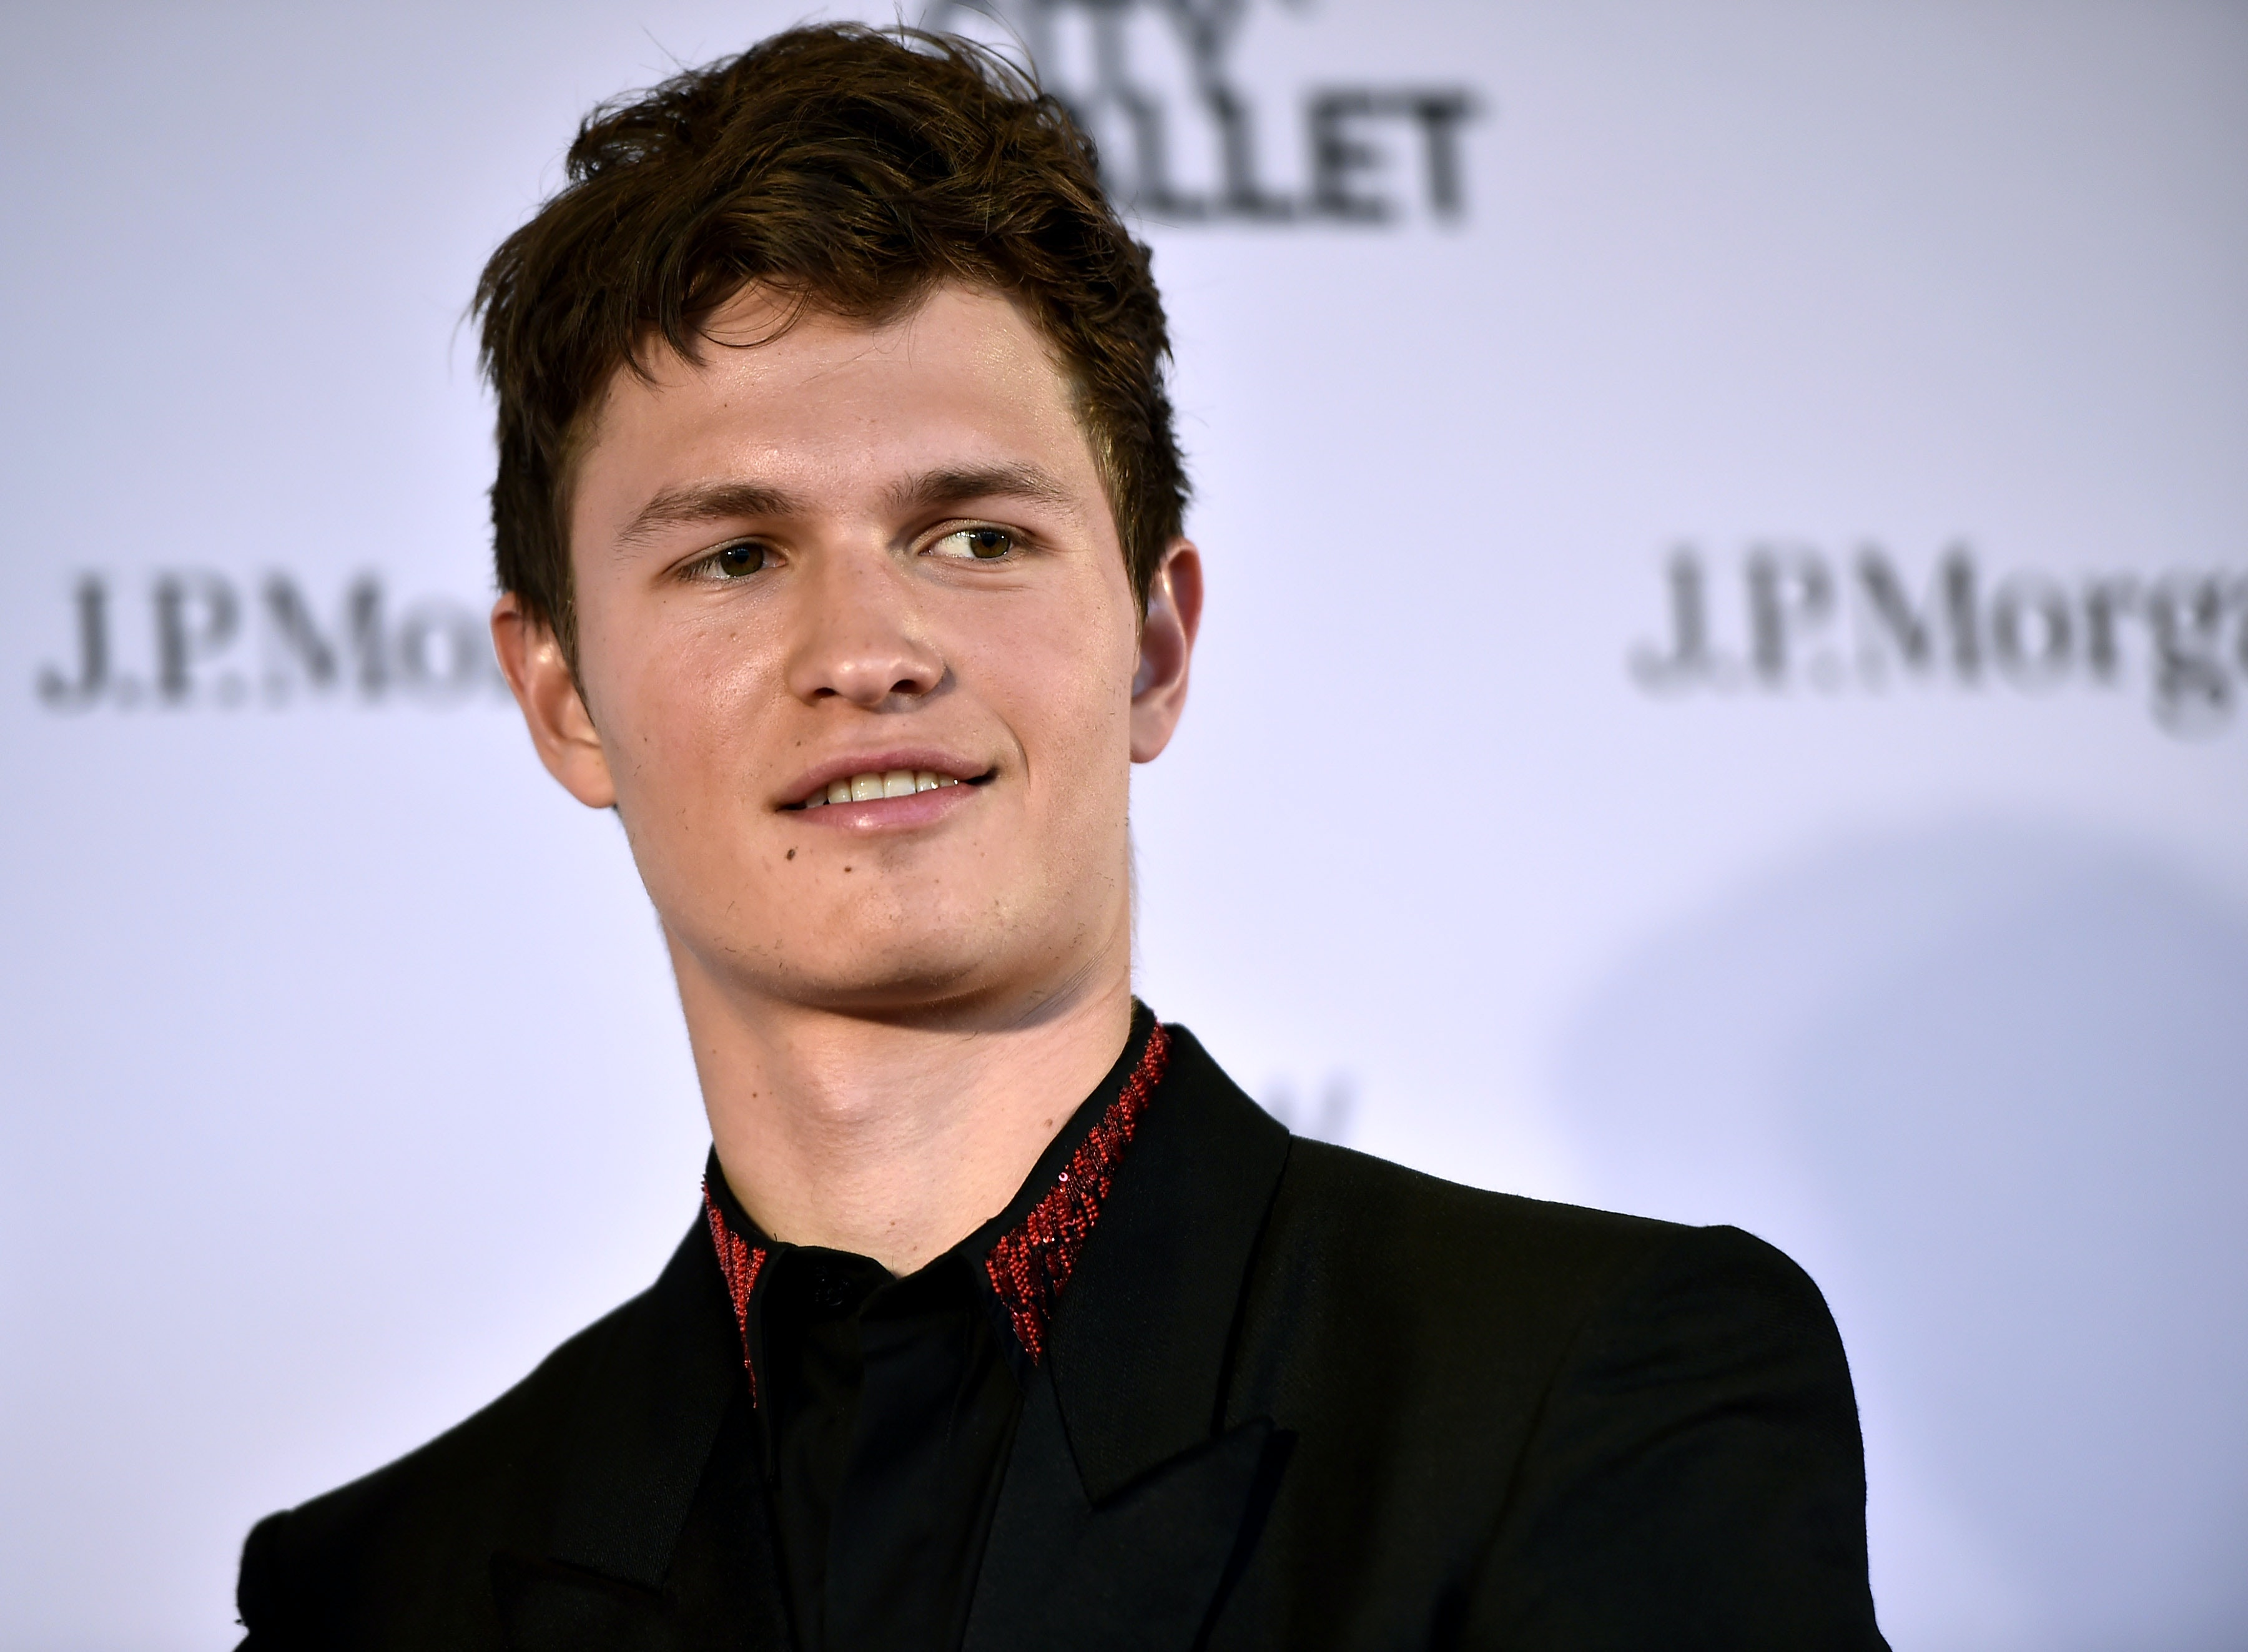 Who is ansel elgort dating 2019